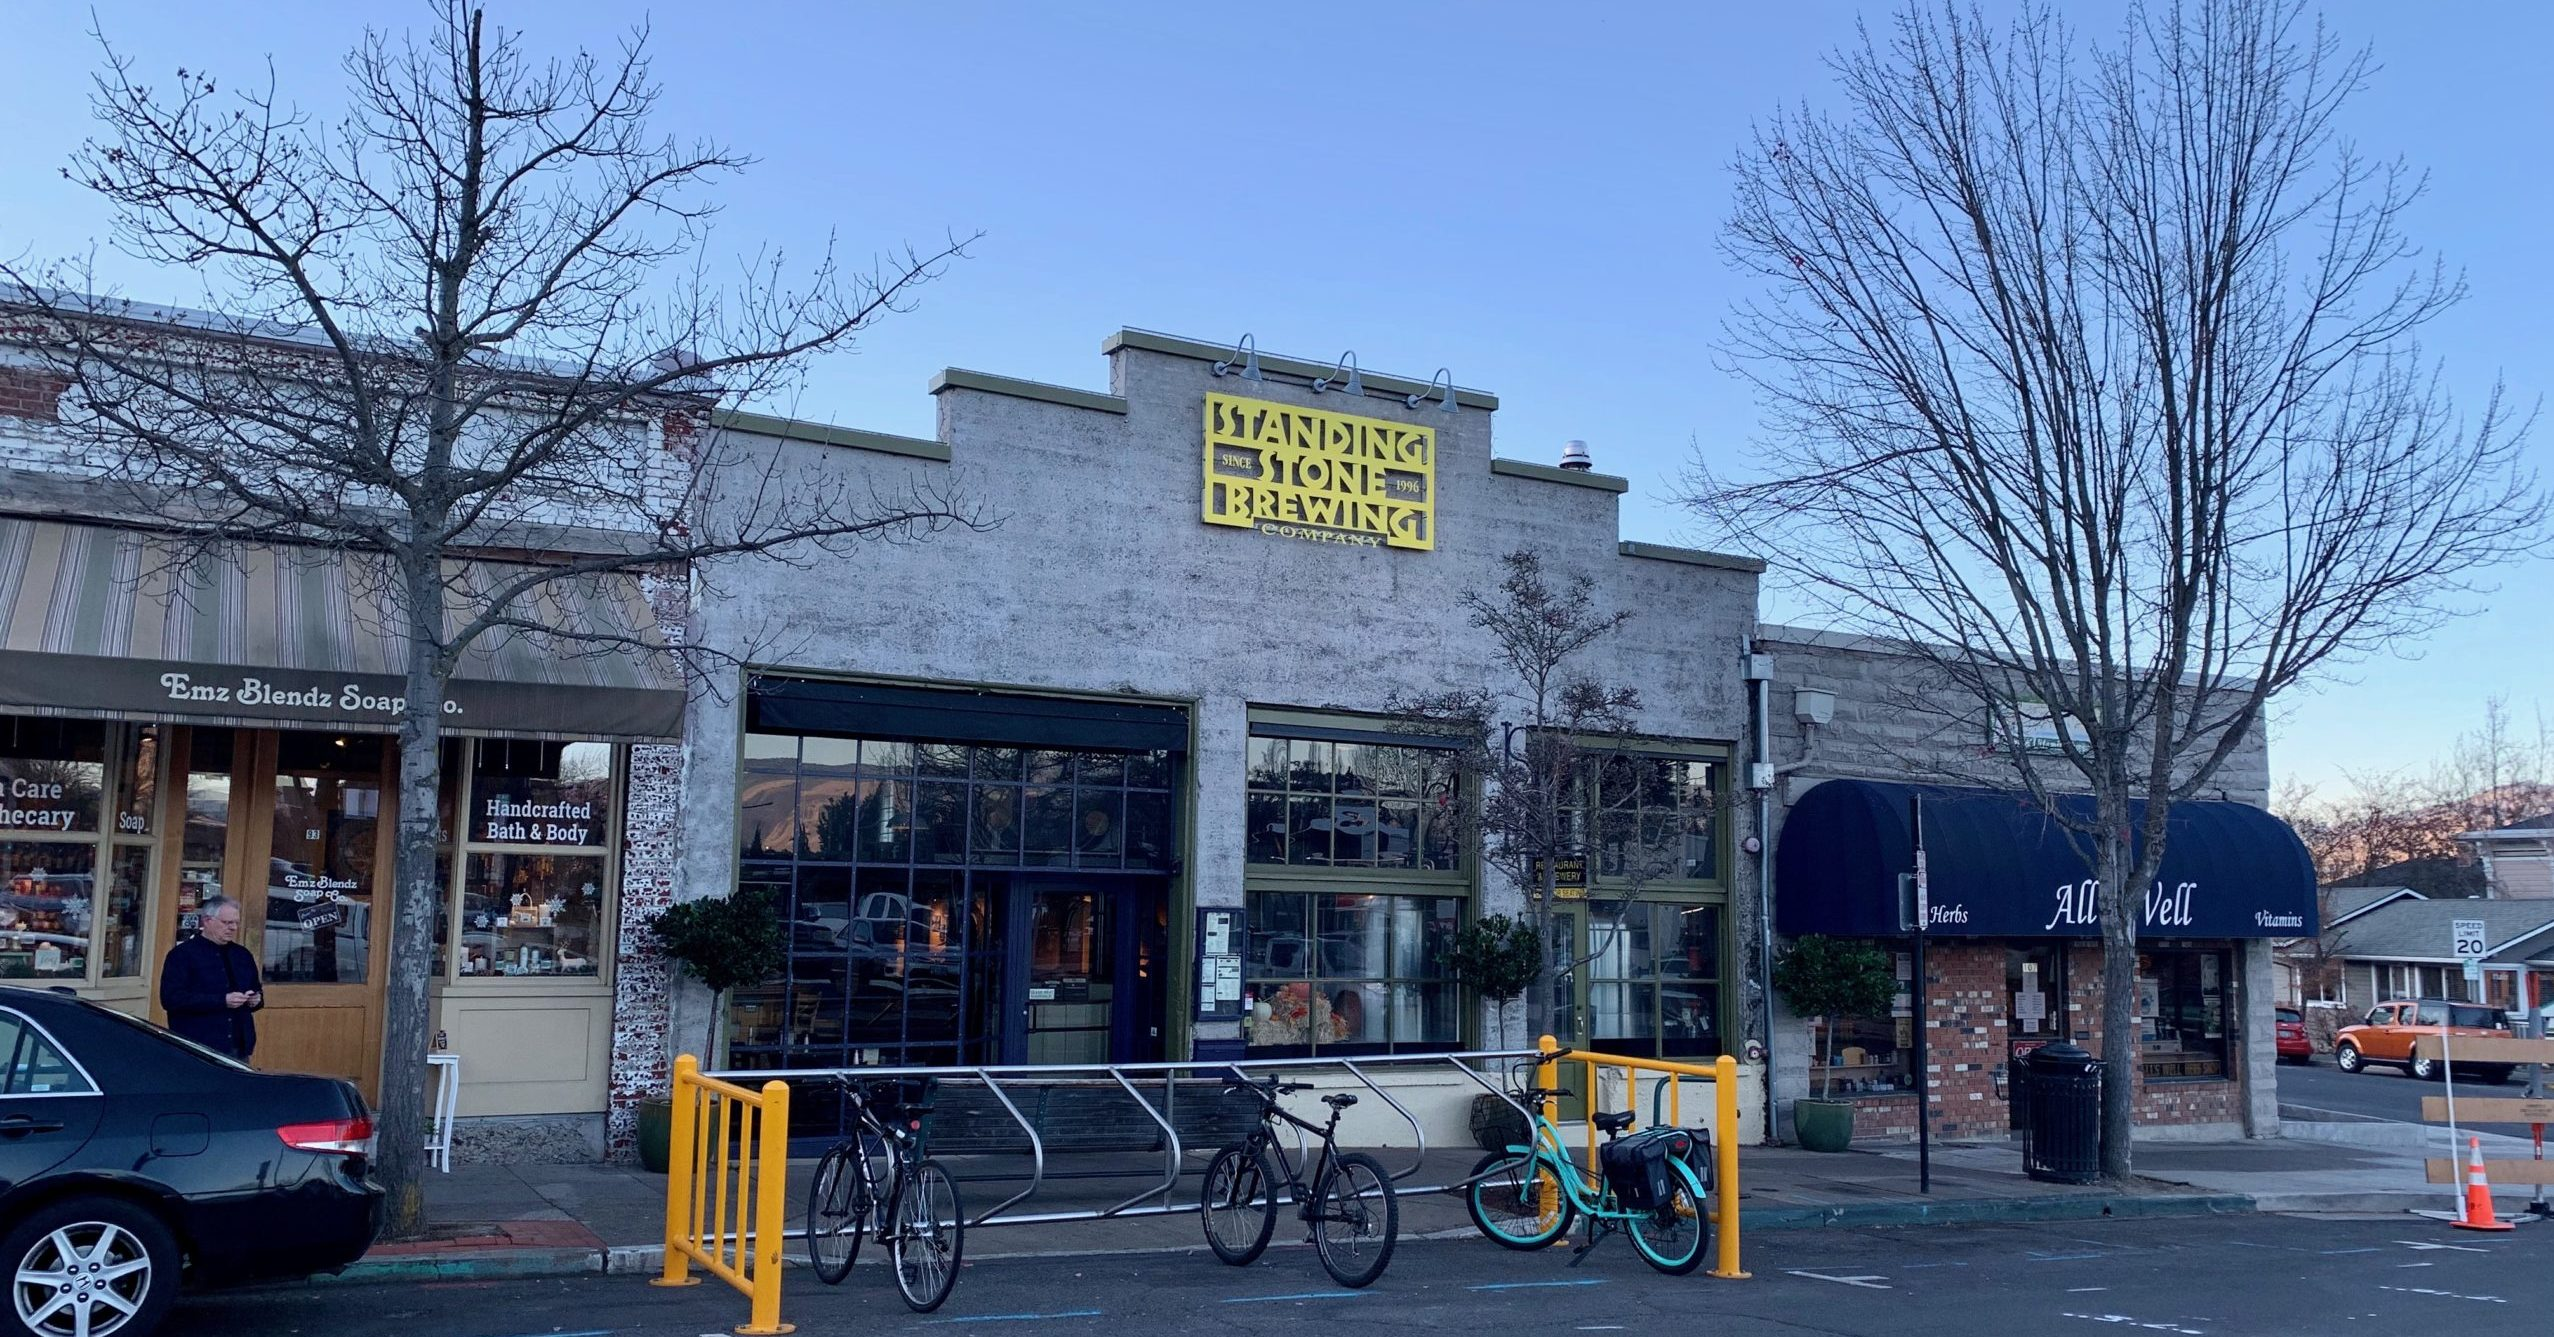 A brewery storefront with bike parking